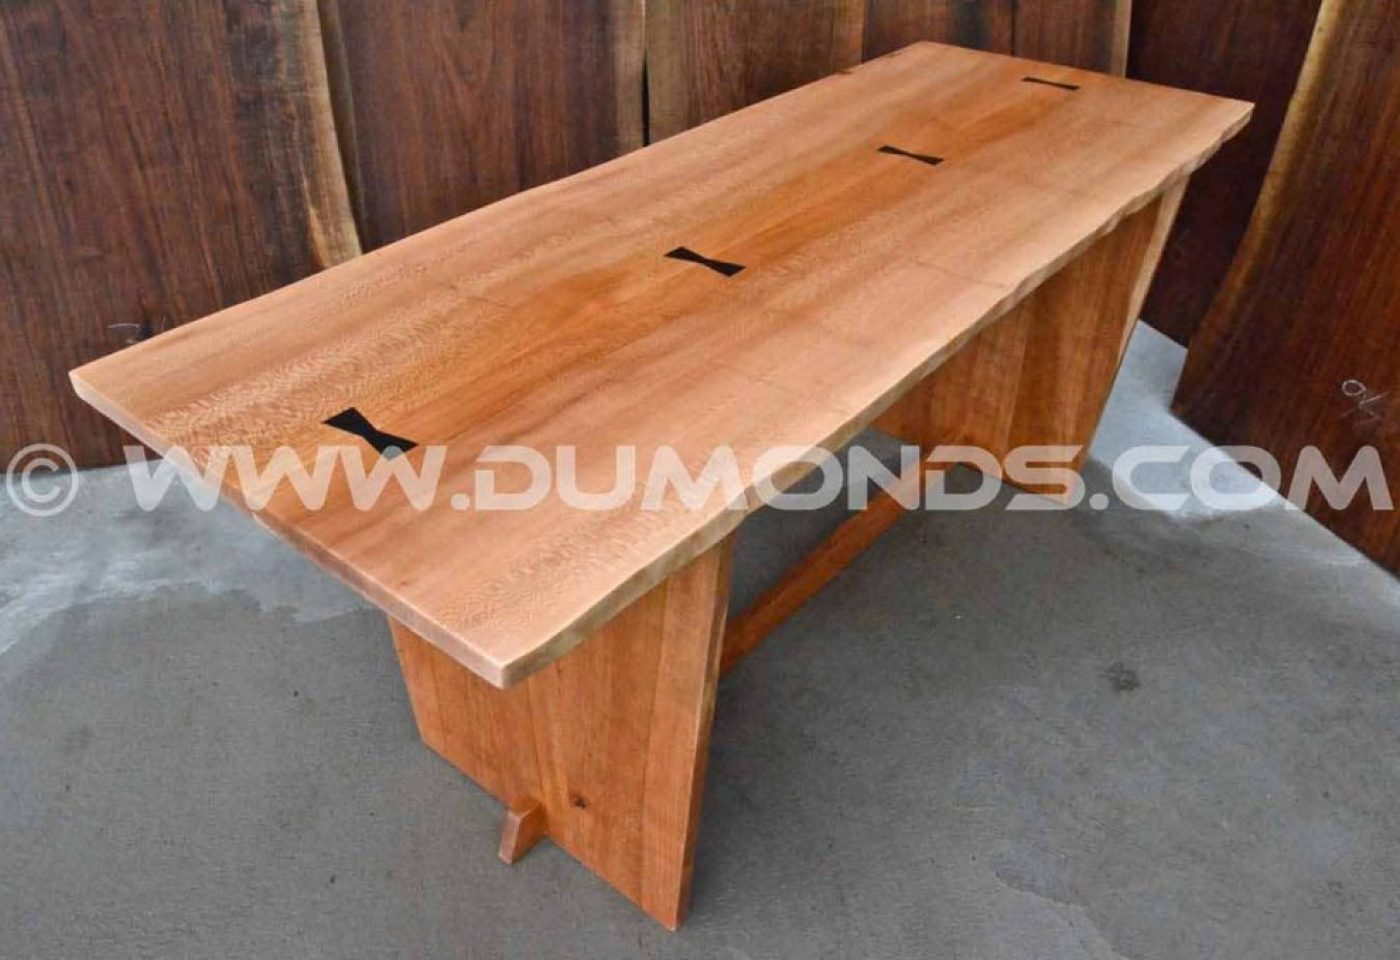 6′ QUARTER SAWN SYCAMORE TABLE